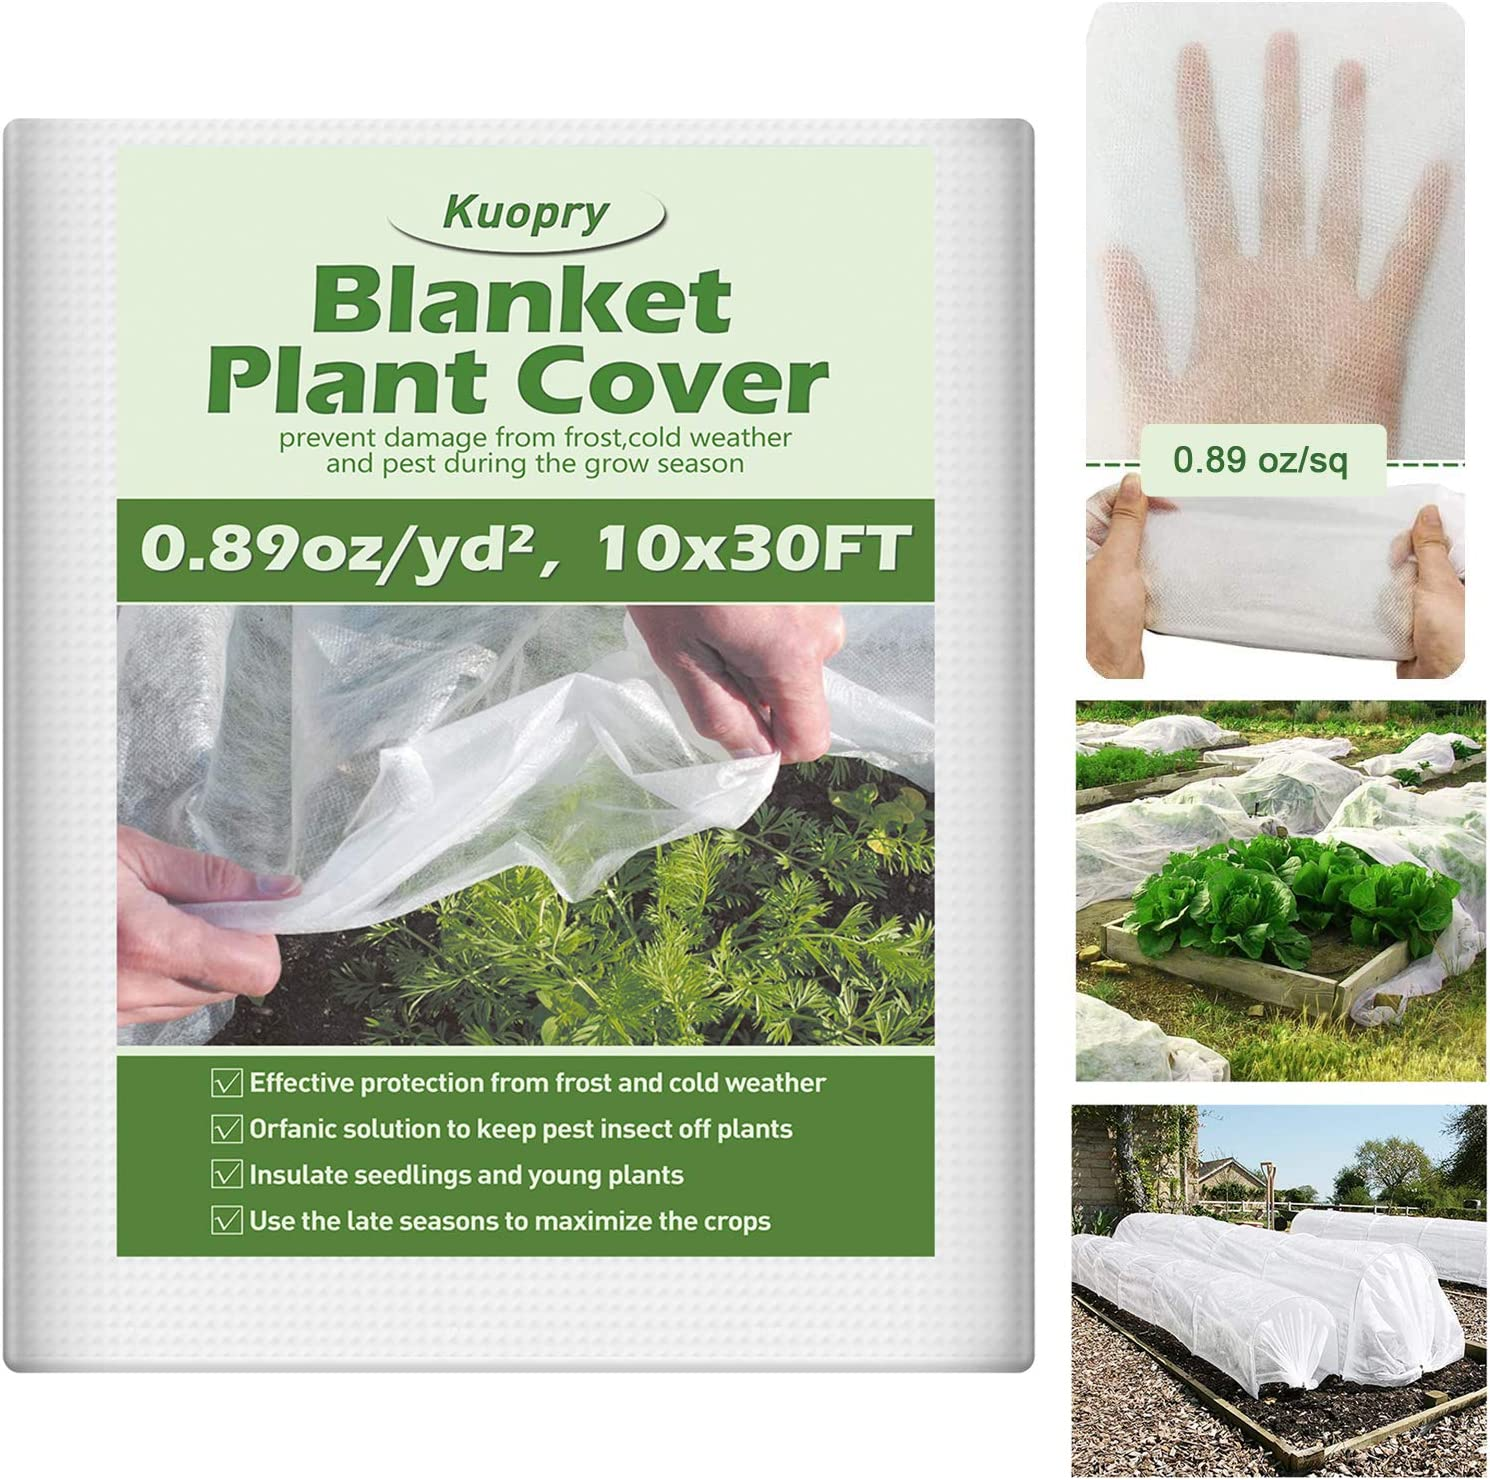 Kuopry Plant Covers Freeze Protection, 10Ft x 30Ft Reusable Floating Row Cover, 0.89 oz/sq Freeze Protection Plant Blankets for Cold Weather, Garden Winterize Cover for Winter Frost Protection